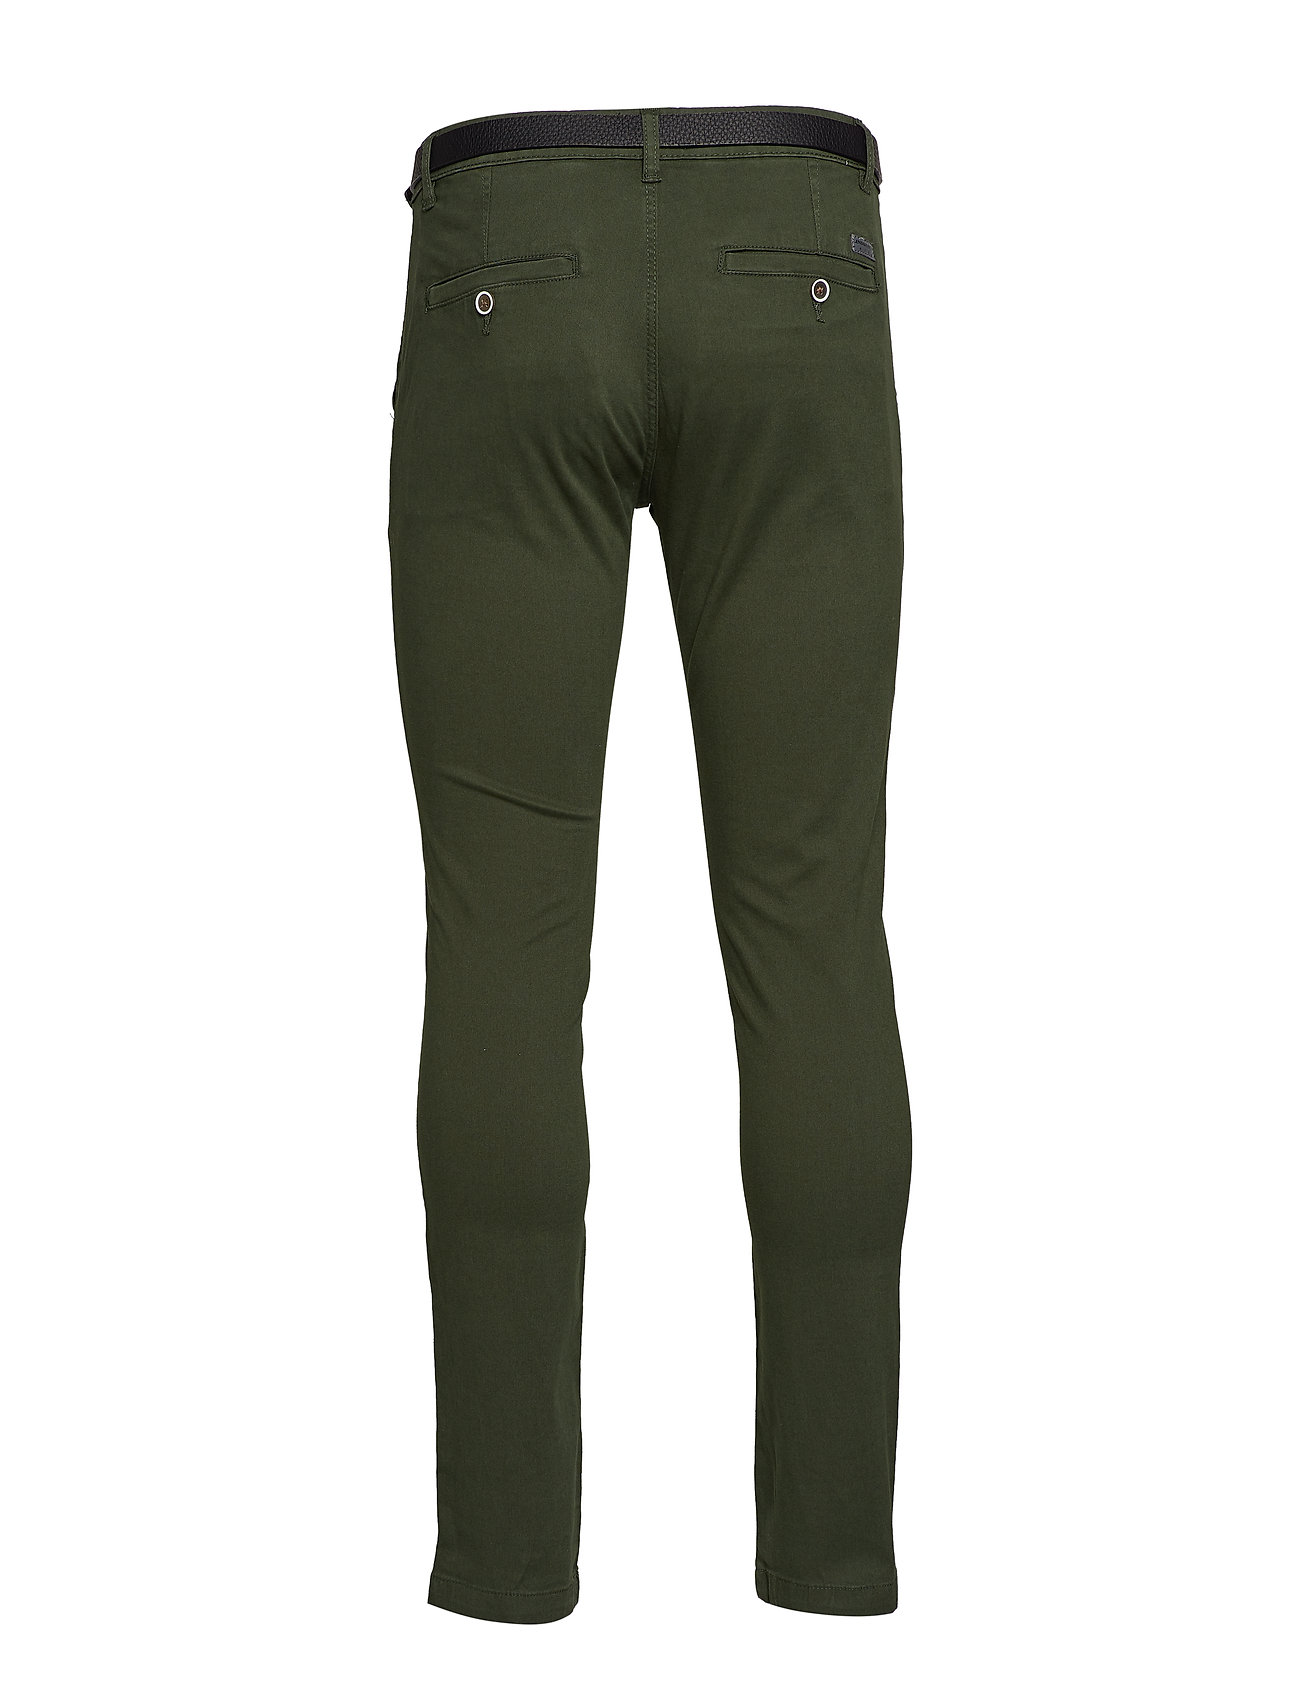 Stretch Classic WBeltbottle Chino GreenLindbergh yONnP8wvm0